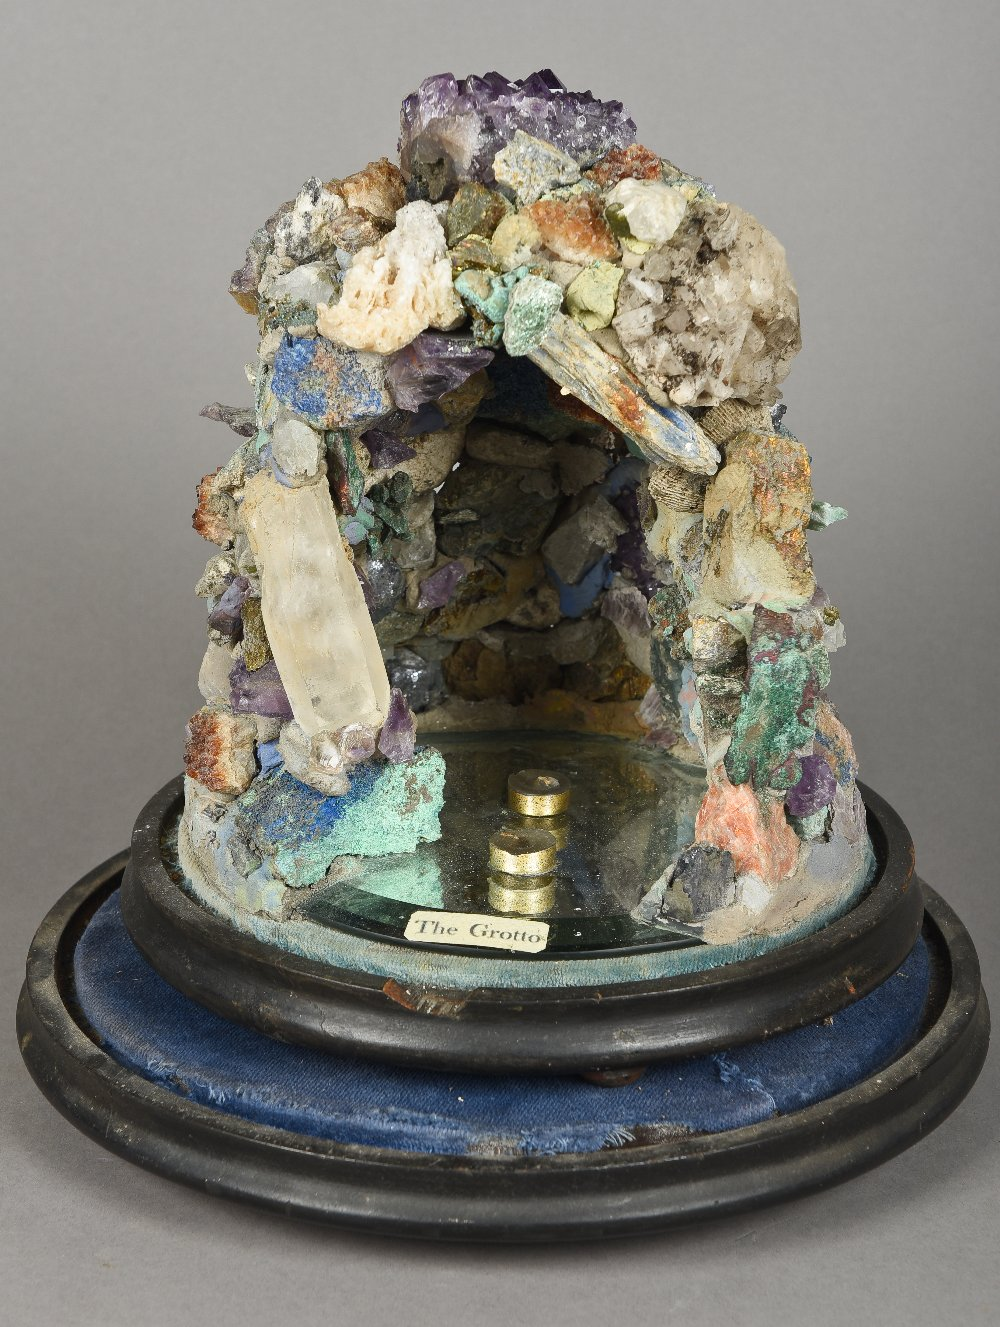 A specimen stone model grottoOf typical form, mounted on a mirrored plinth base, under a glass do